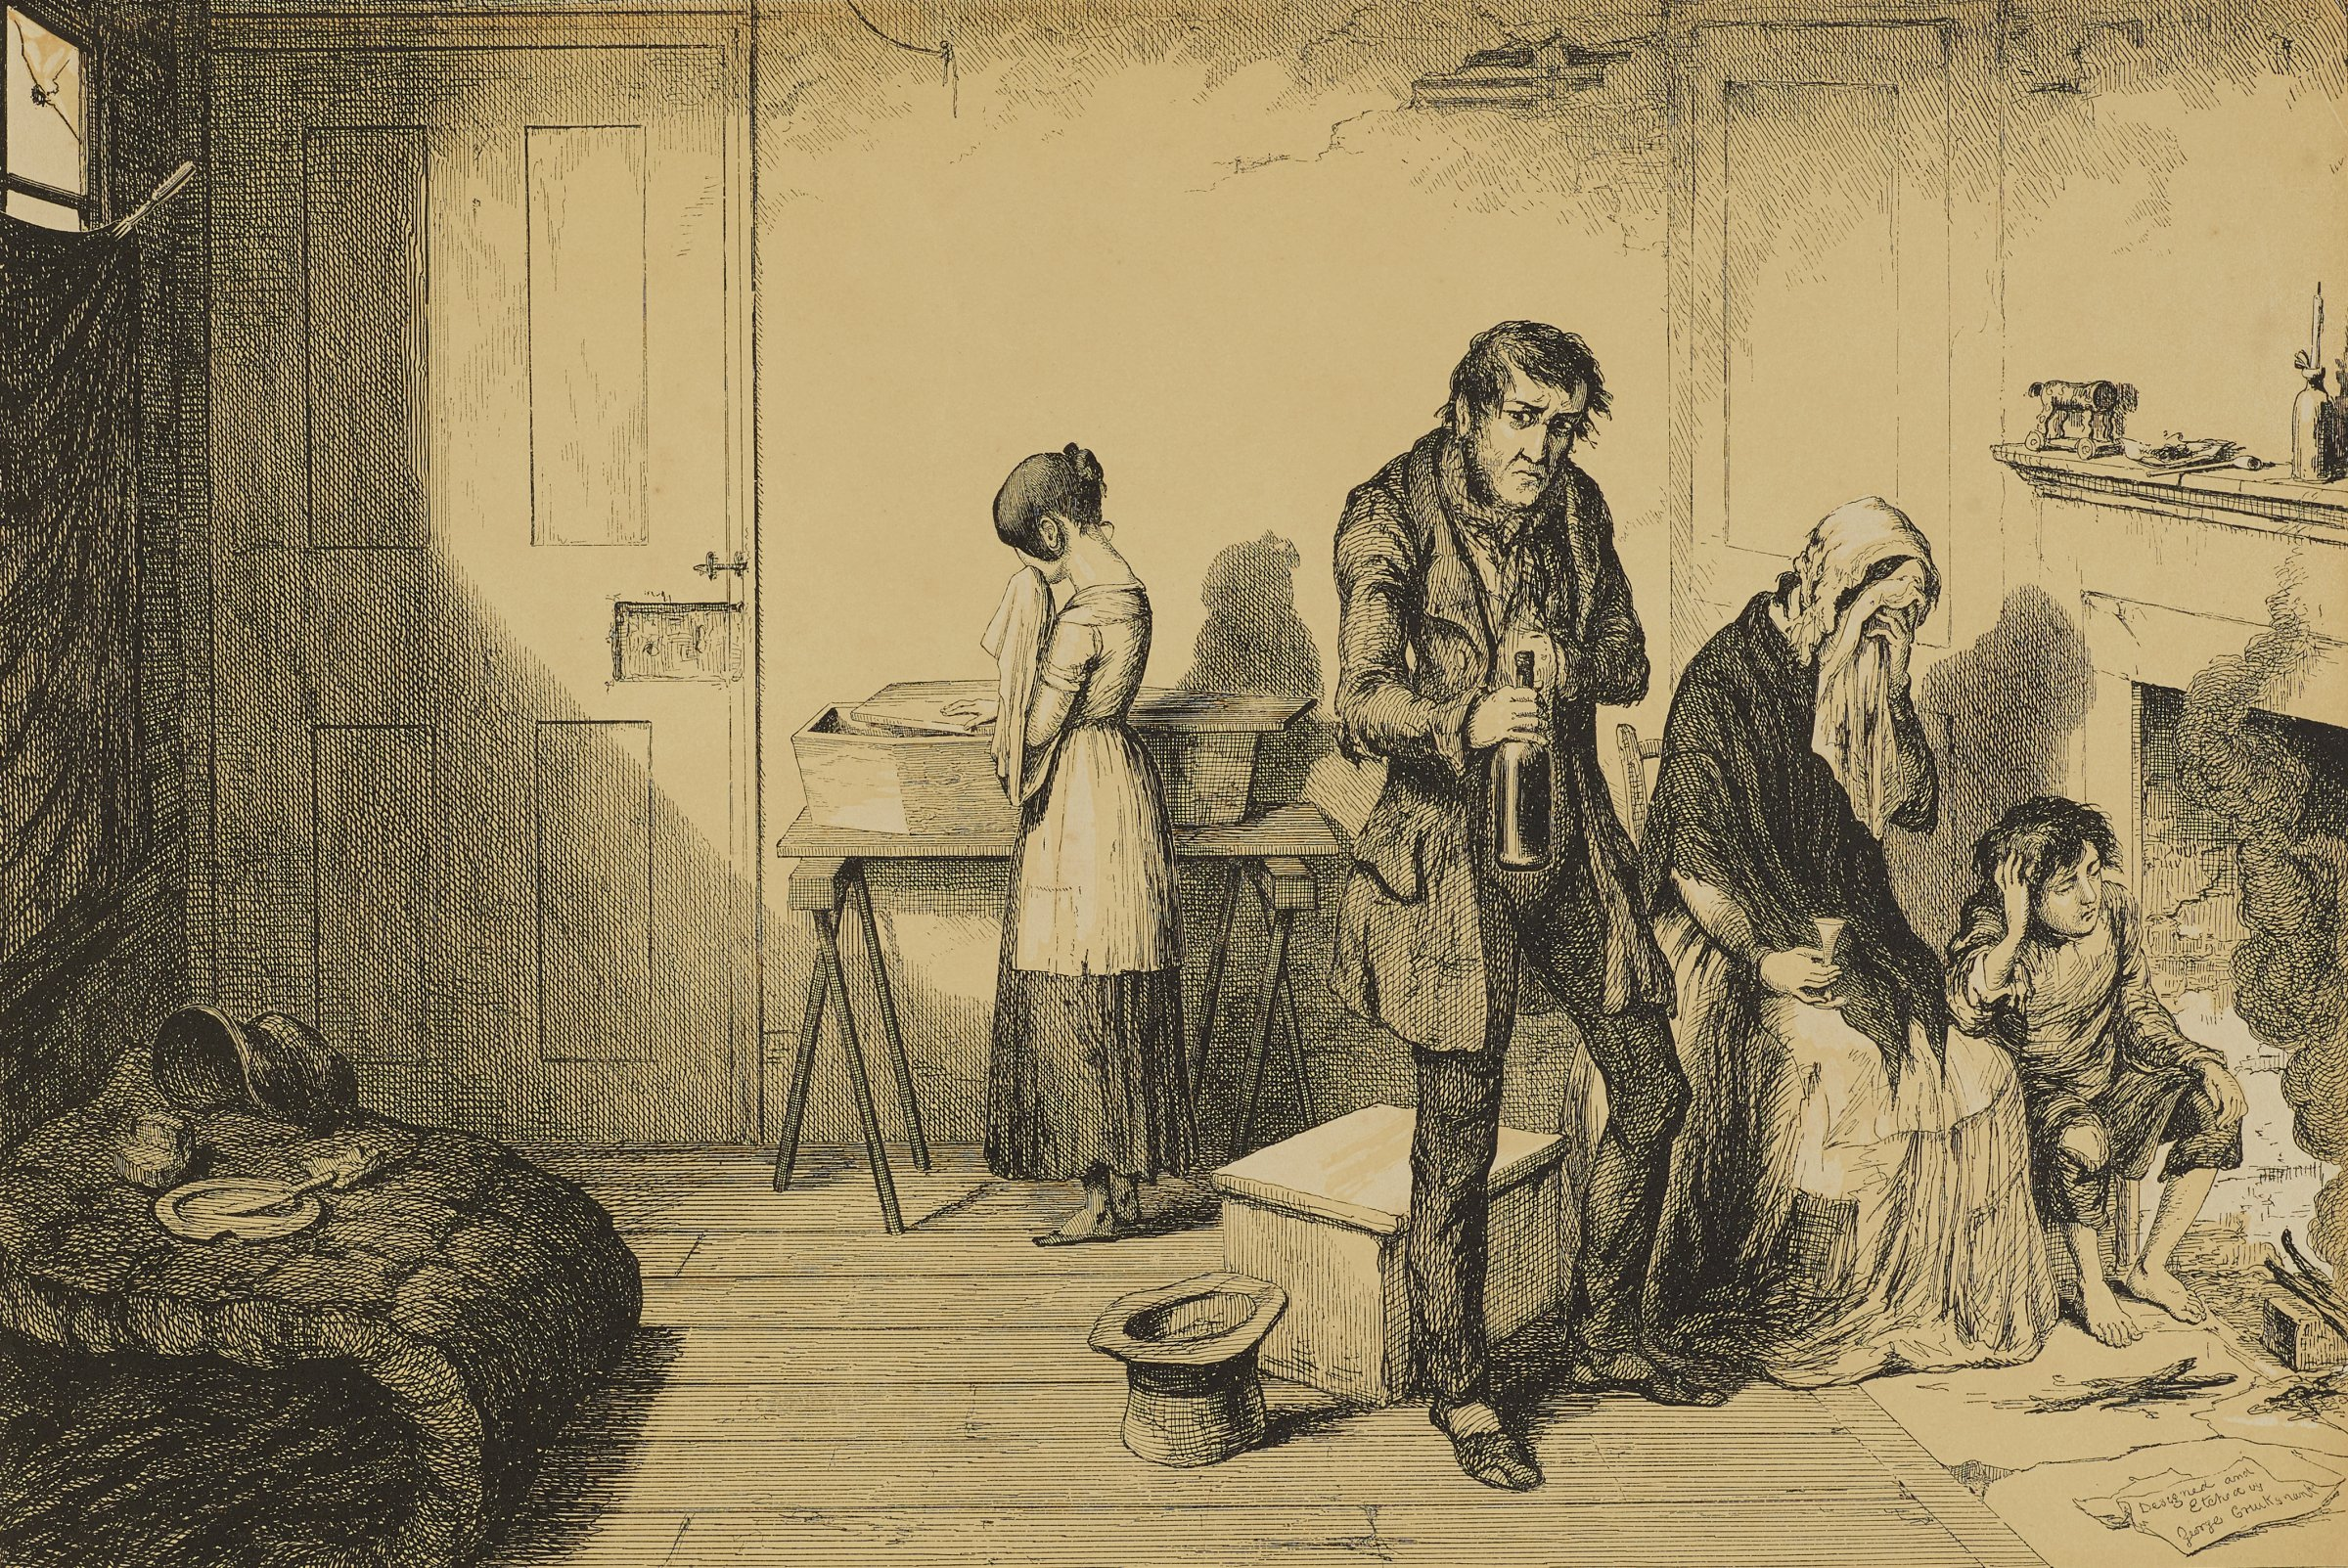 The man stands holding a bottle in his hand, The woman and young boy sit in front of the fire with grieving expressions. The young girl stands behind them looking down at a small, partially open coffin.